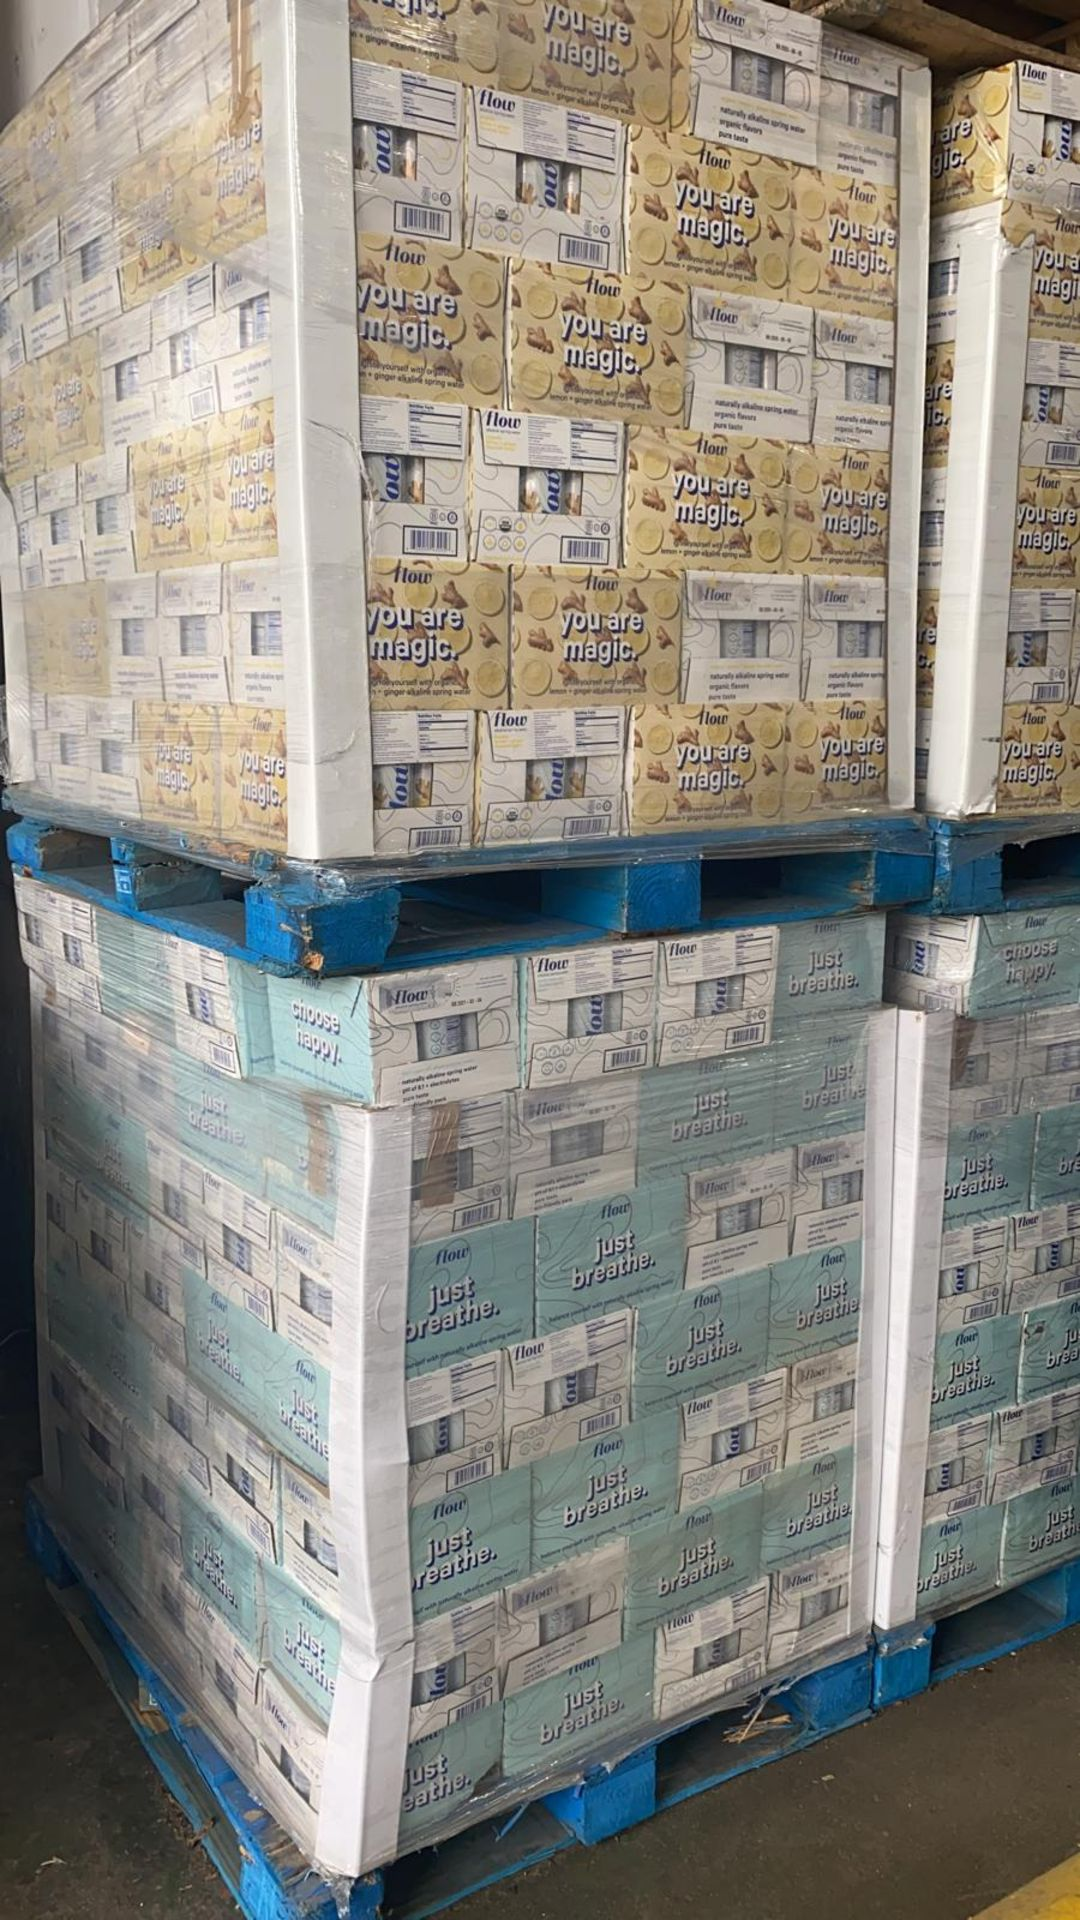 + VAT Pallet Of 112 Cases Of Flow Akaline Spring Water - Ph8.1 - Eco Friendly Pack - BBE 03 2021 - Image 5 of 5